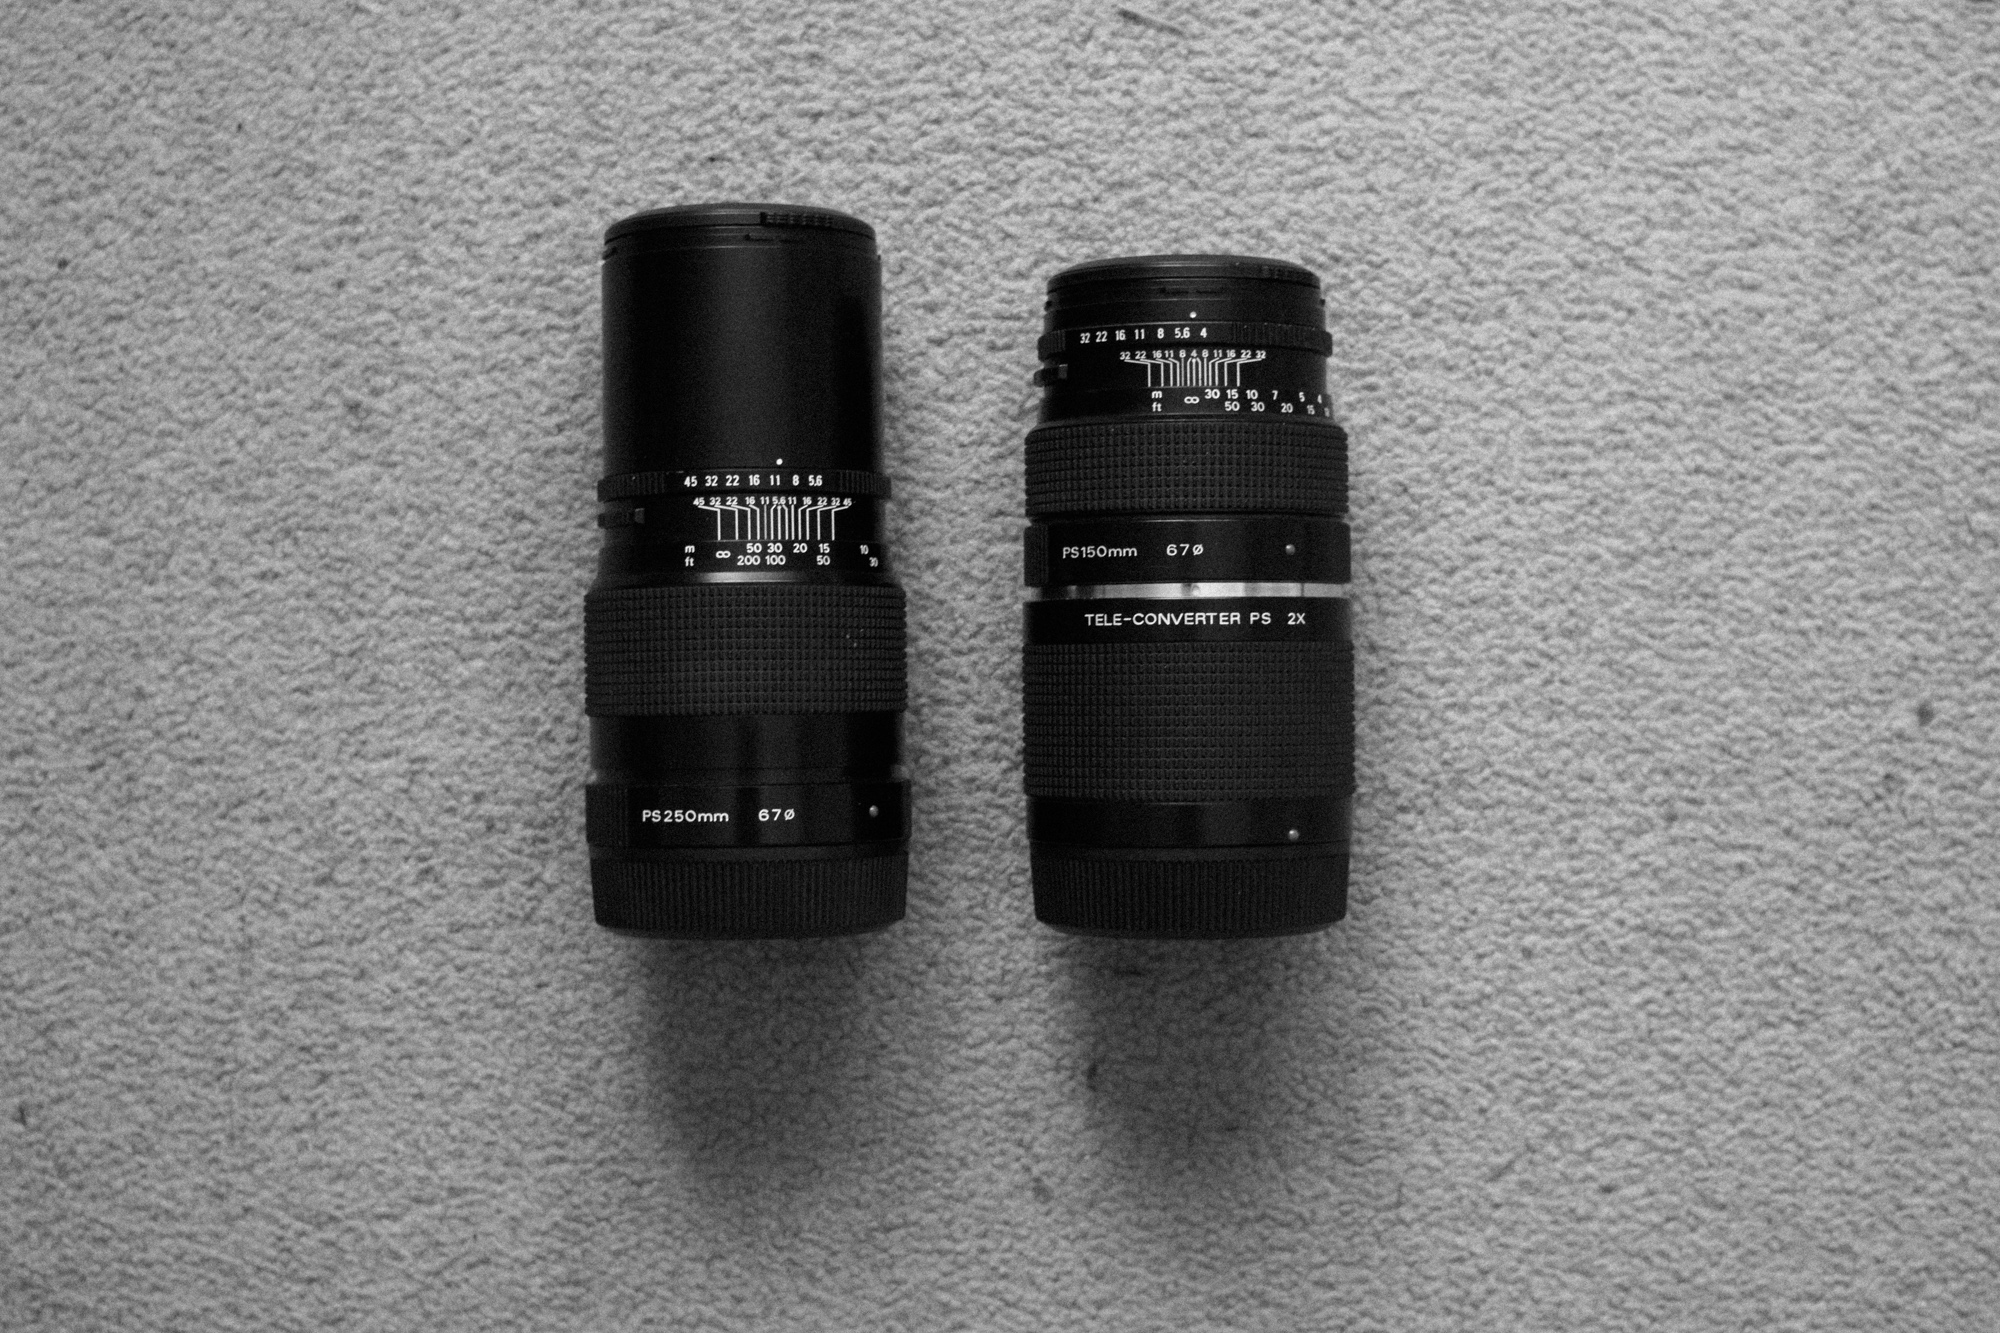 250mm vs 2x Teleconverter + 150mm f/4 lens: pretty much the same size